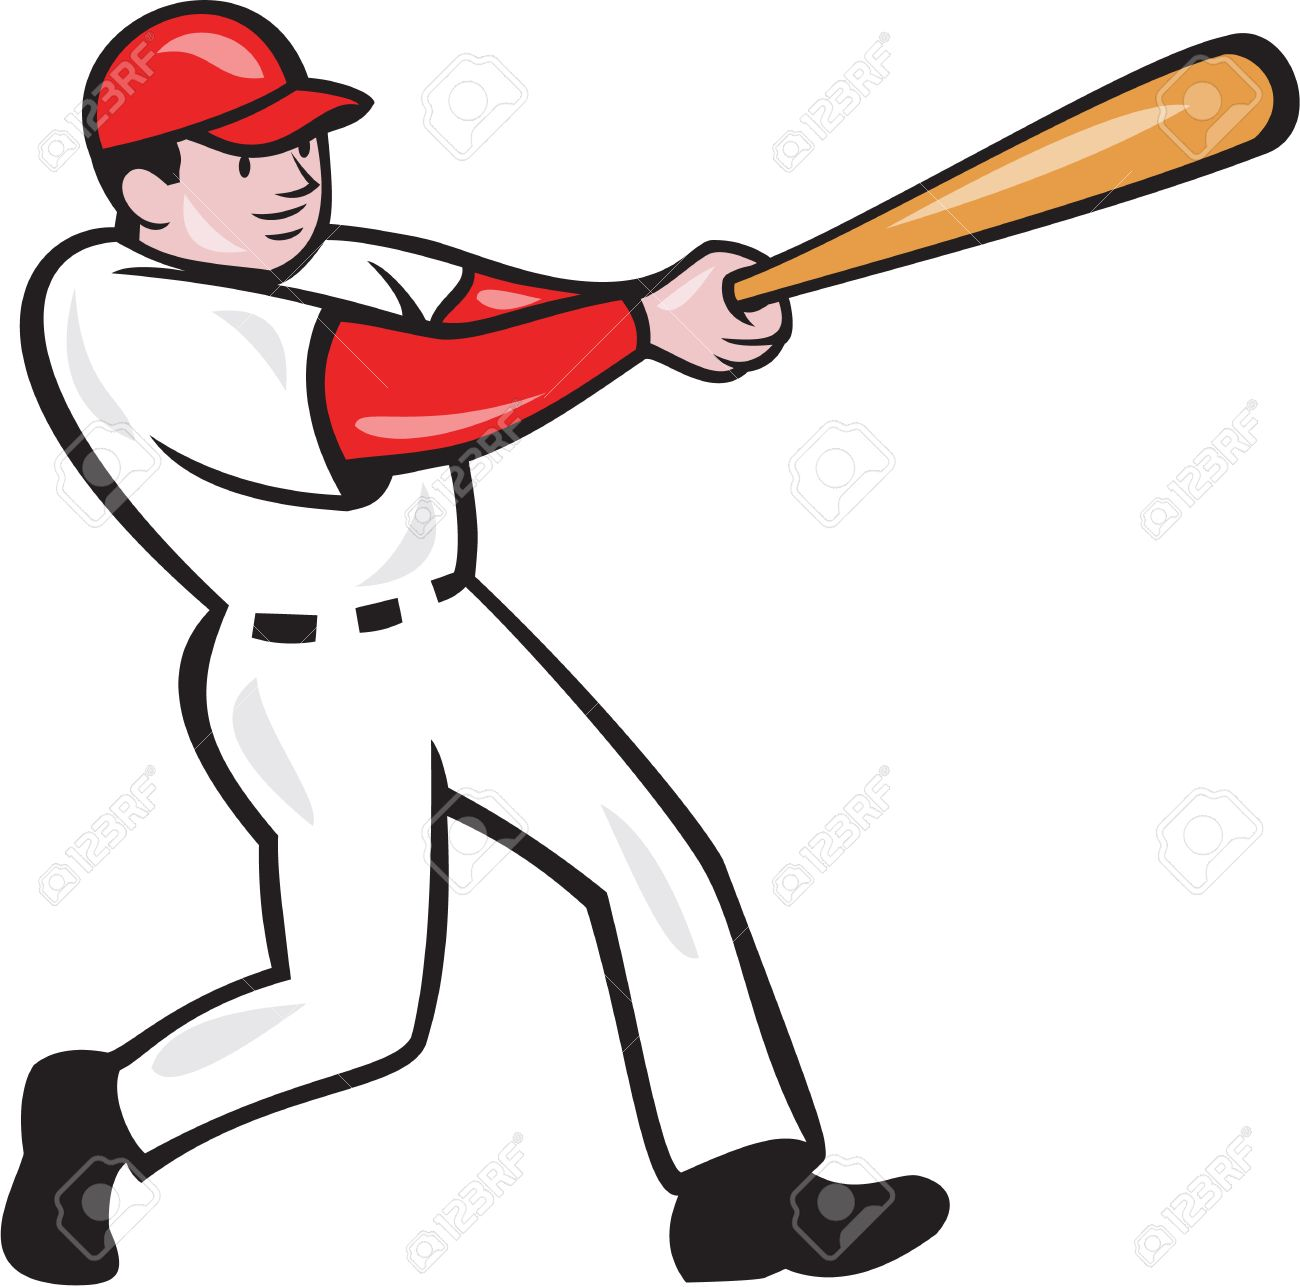 hight resolution of illustration of an american baseball player batter hitter batting with bat done in cartoon style isolated